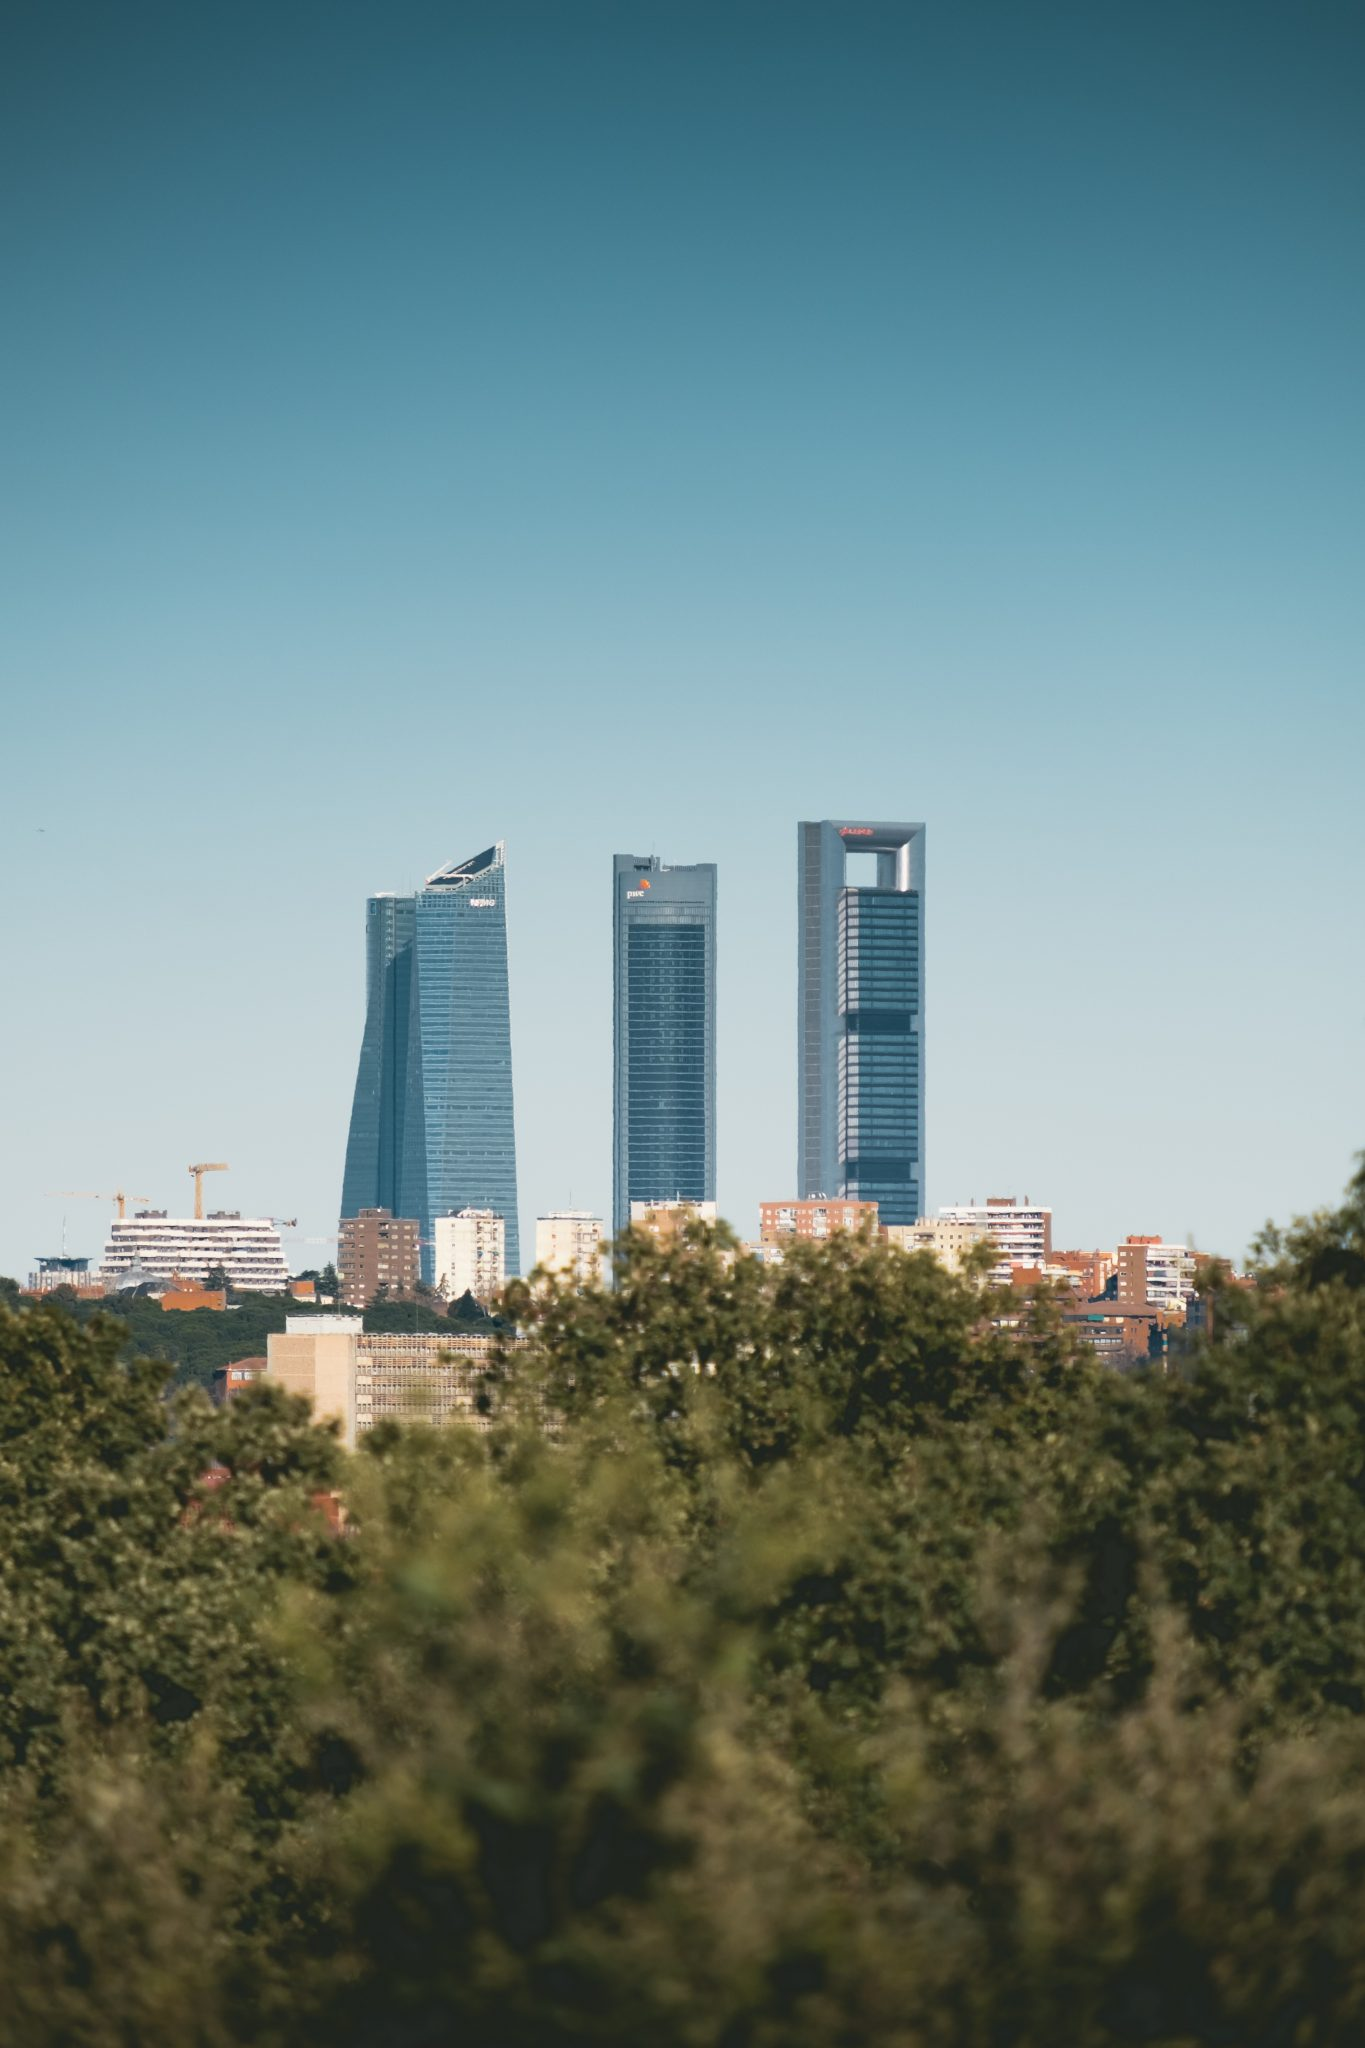 The cuattro torres Madrid photo by Jo Kassis